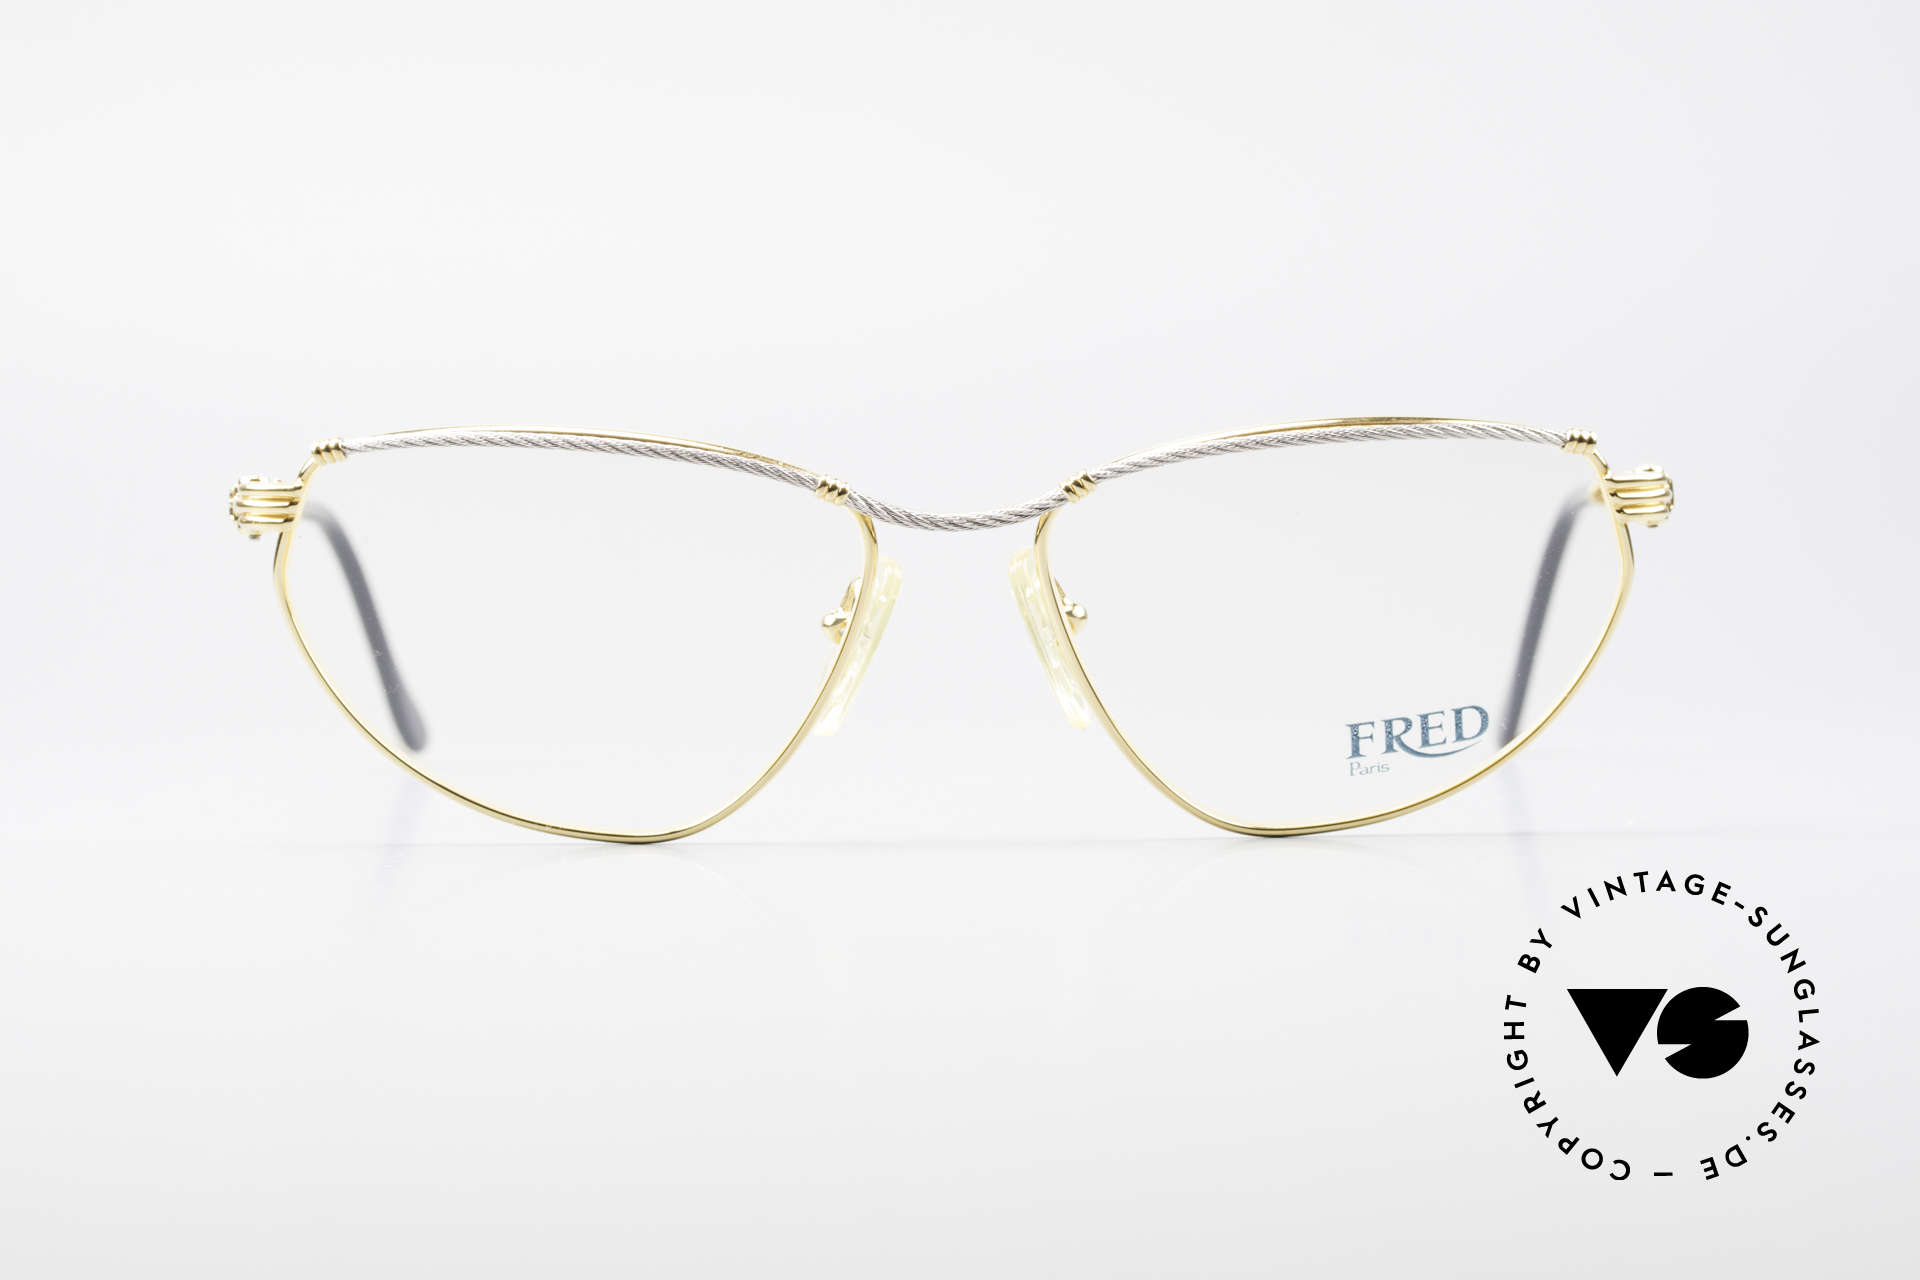 Fred Alize Luxury M Eyeglasses Ladies, marine design (distinctive Fred) in high-end quality, Made for Women